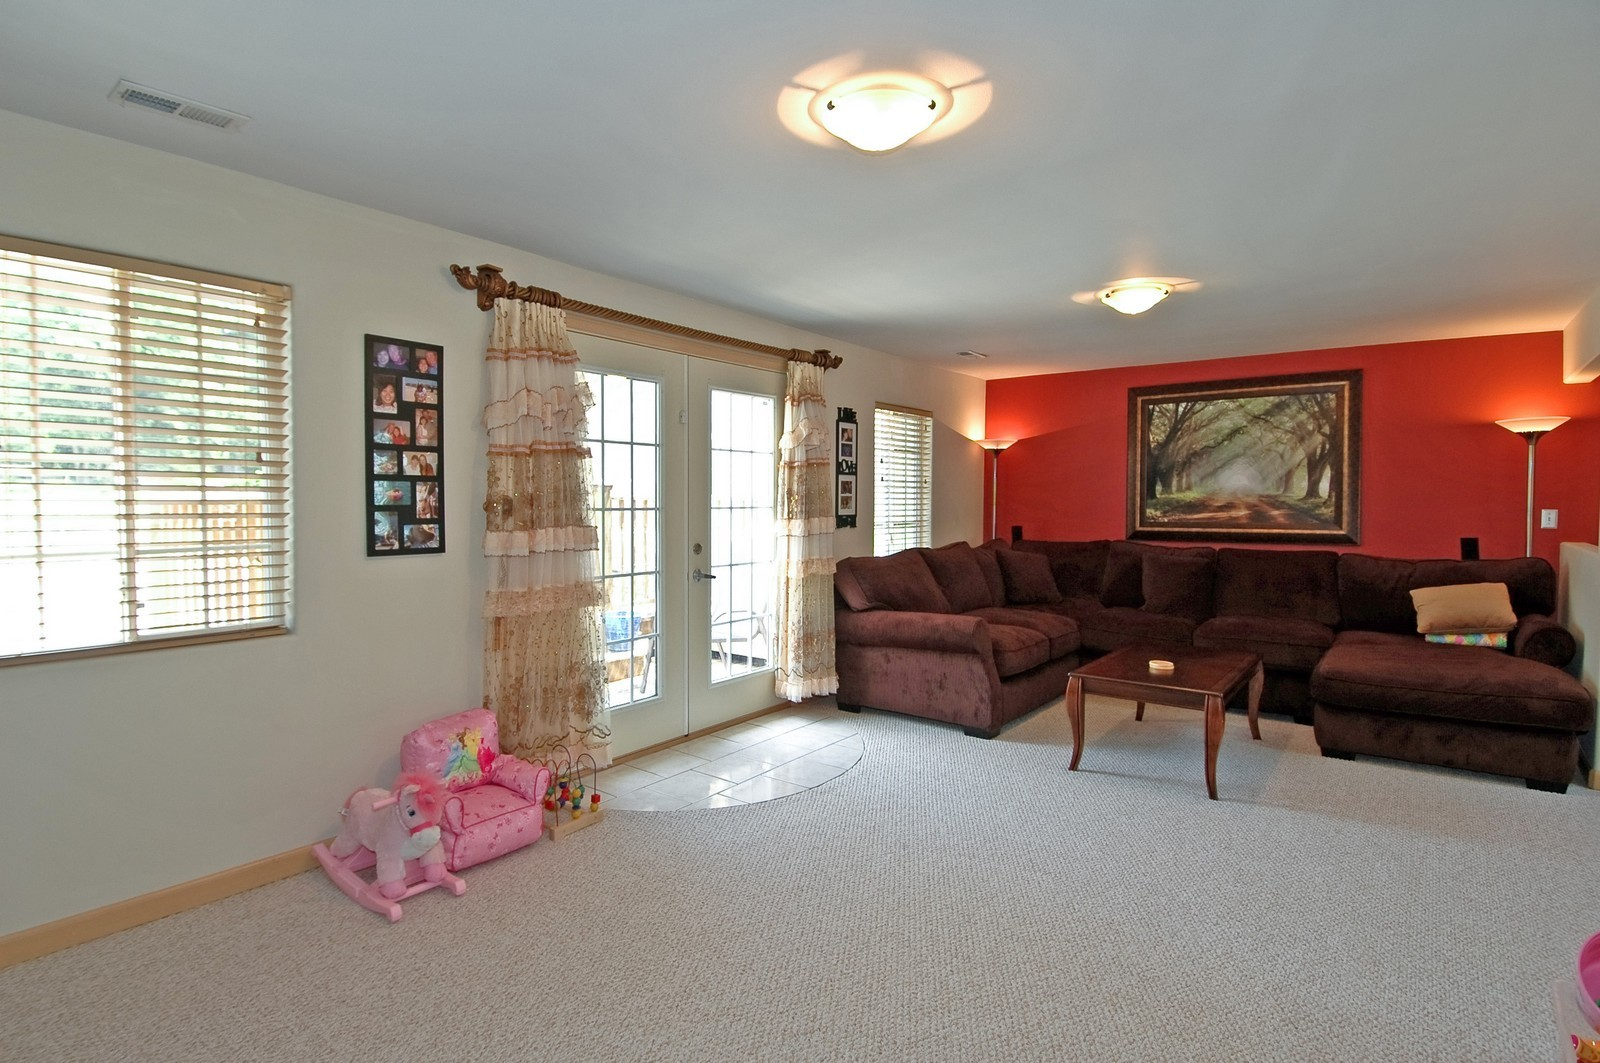 Real Estate Photography - 10N875 Belmont St, Elgin, IL, 60120 - Living Room